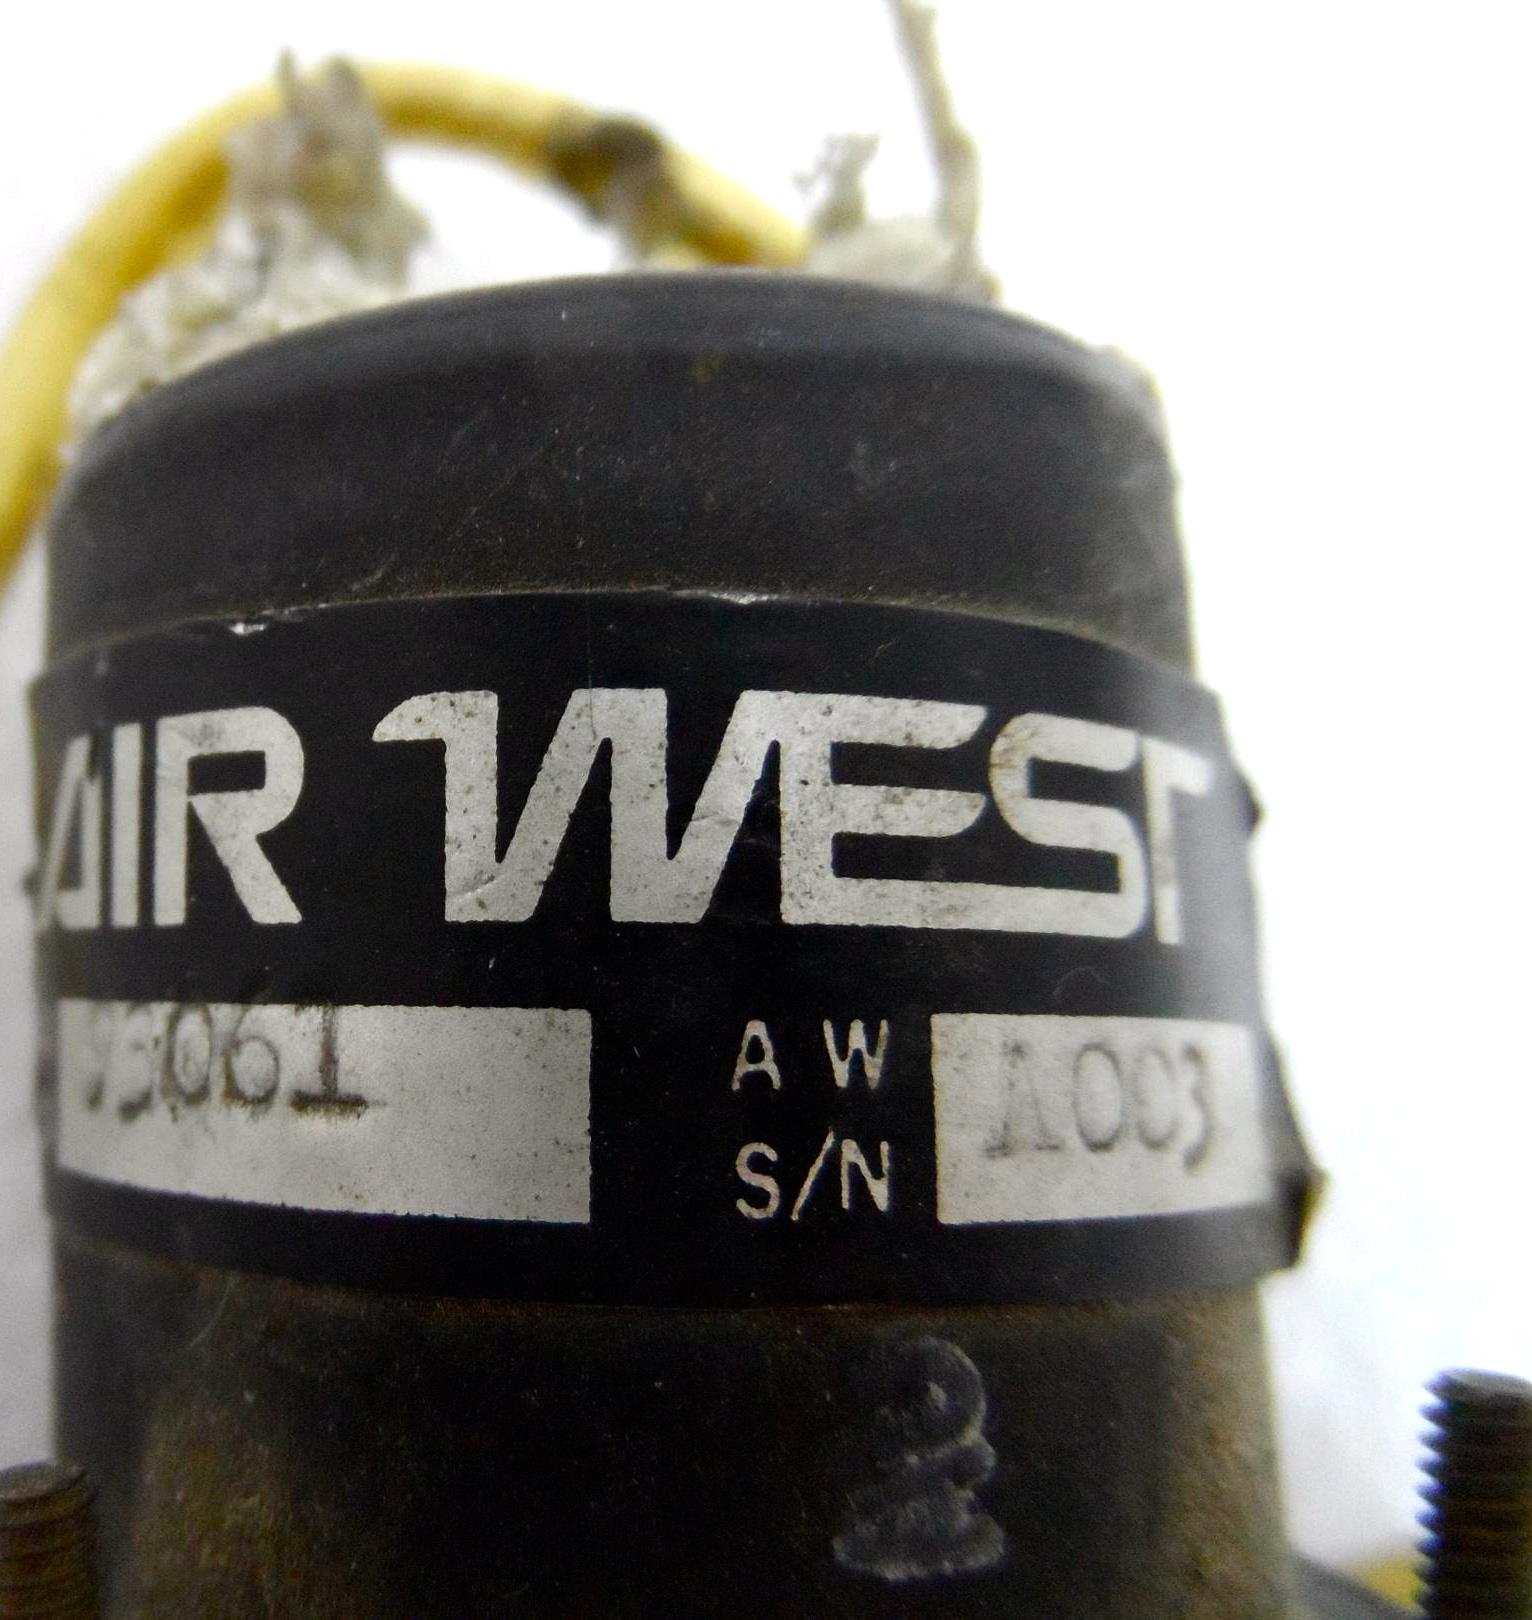 Air West Amp Gauge Guage Gage Meter Aircraft